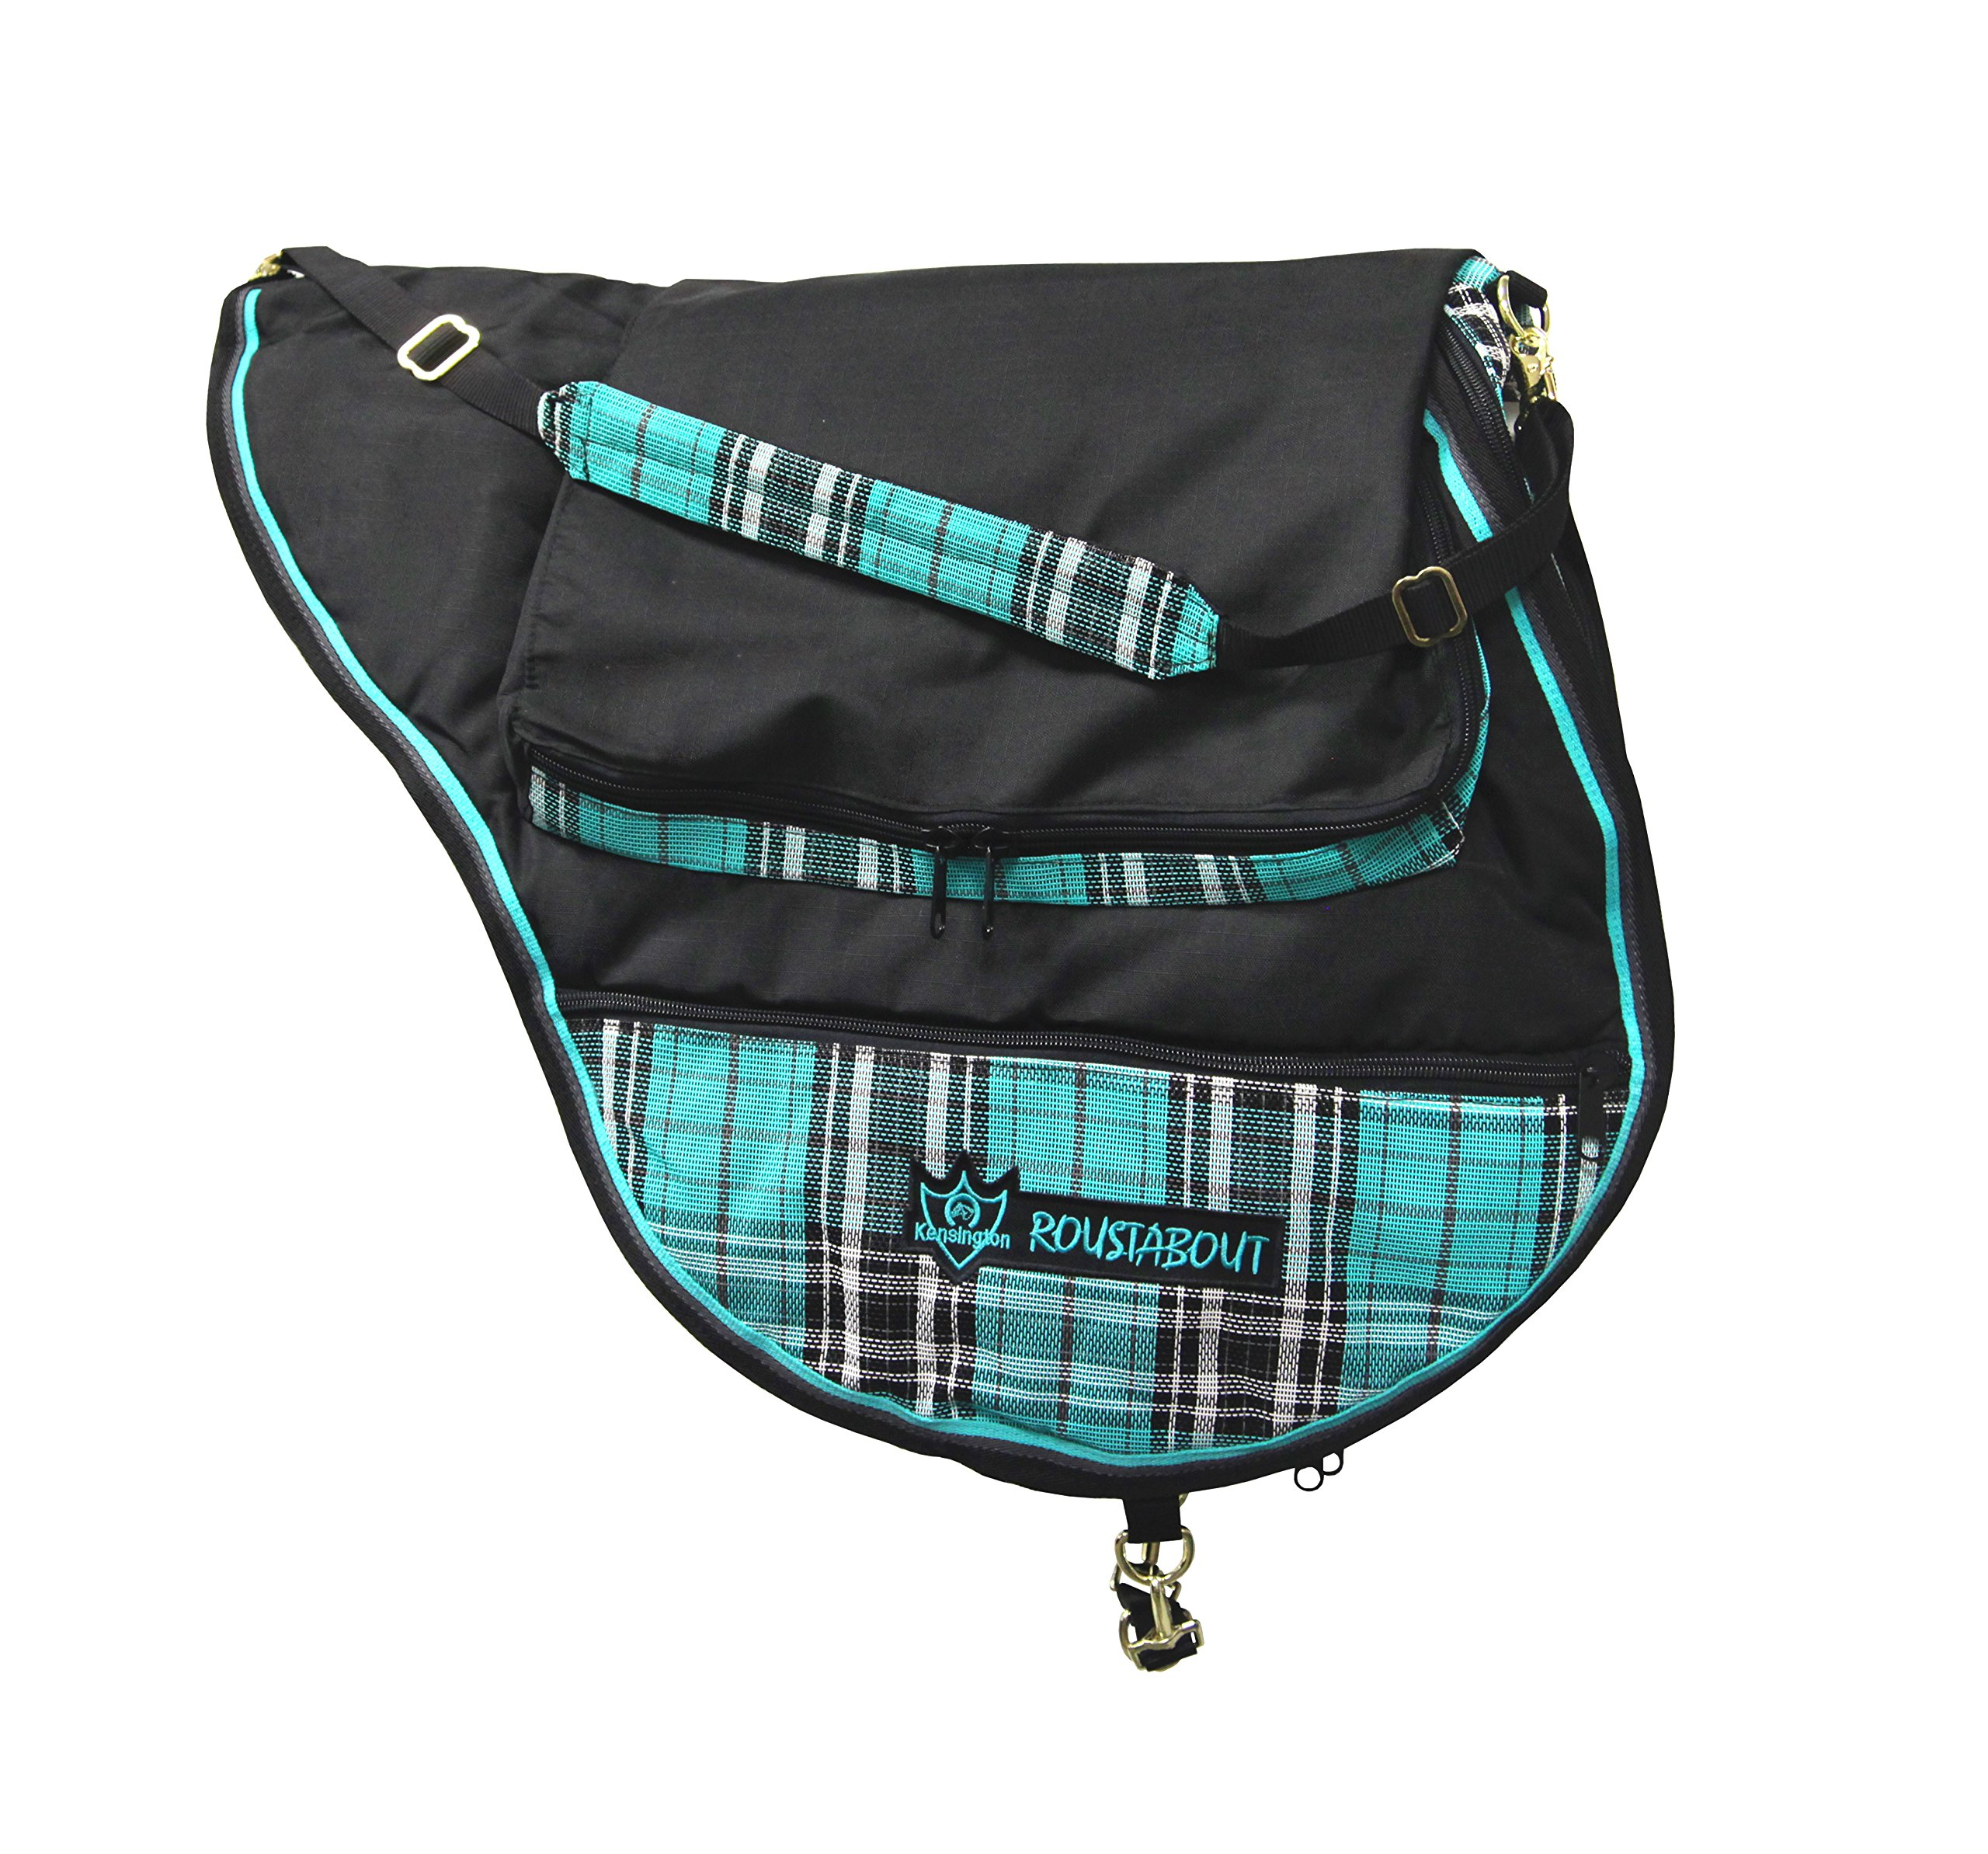 Kensington All Purpose Saddle Carrying Bag — Waterproof Outer Shell — Features Top Pad Storage Compartment — Padded Shoulder Pad for Carrying Comfort